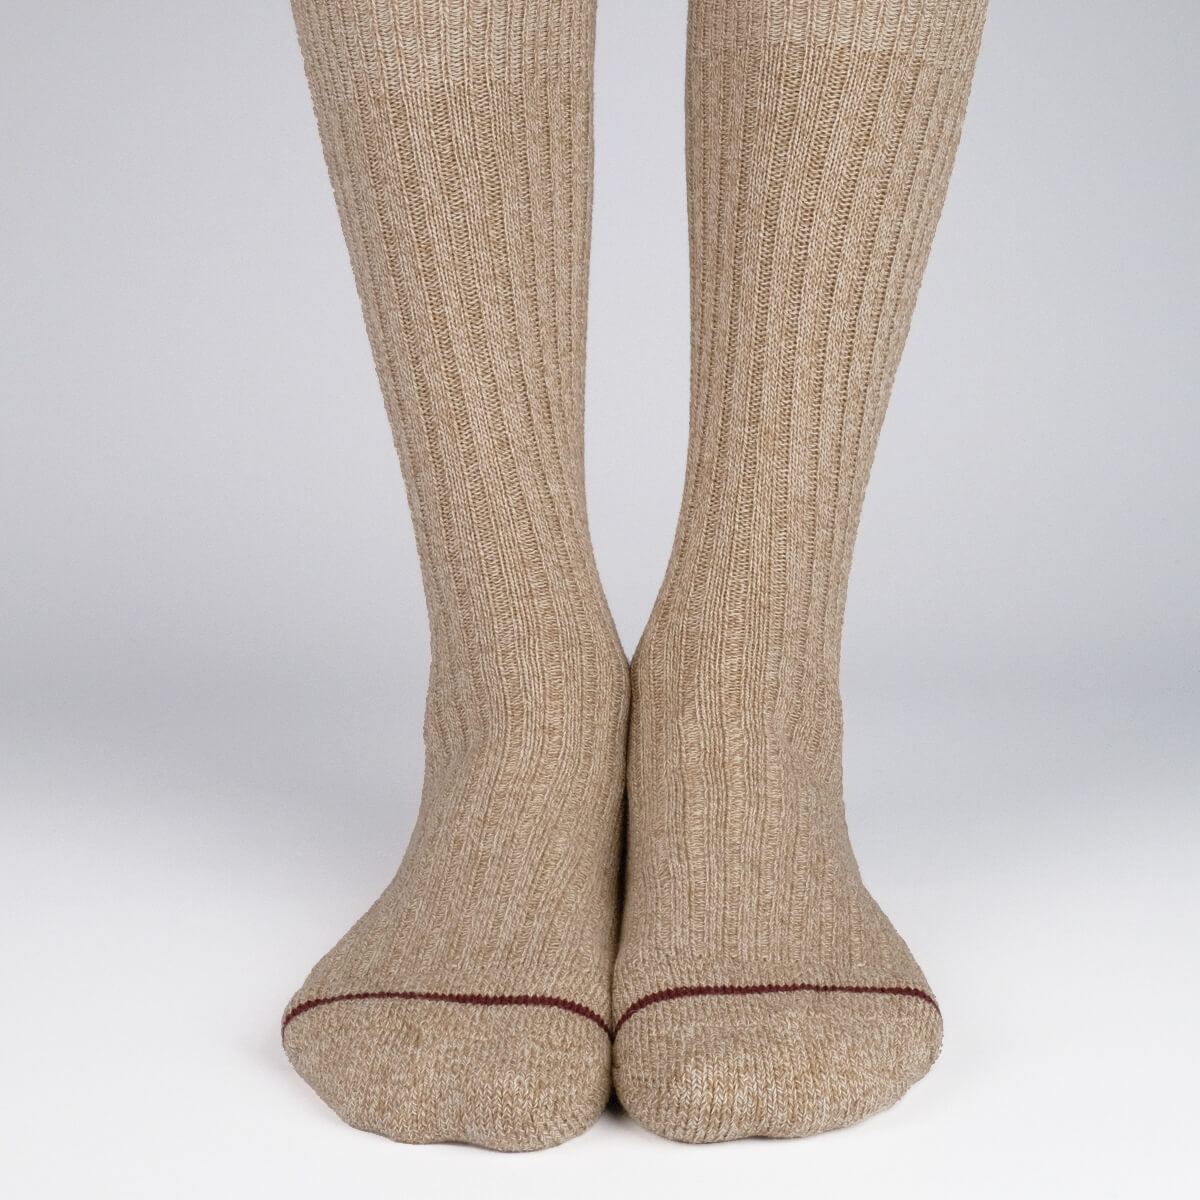 Get The Boot Socks - Brown - Image 2